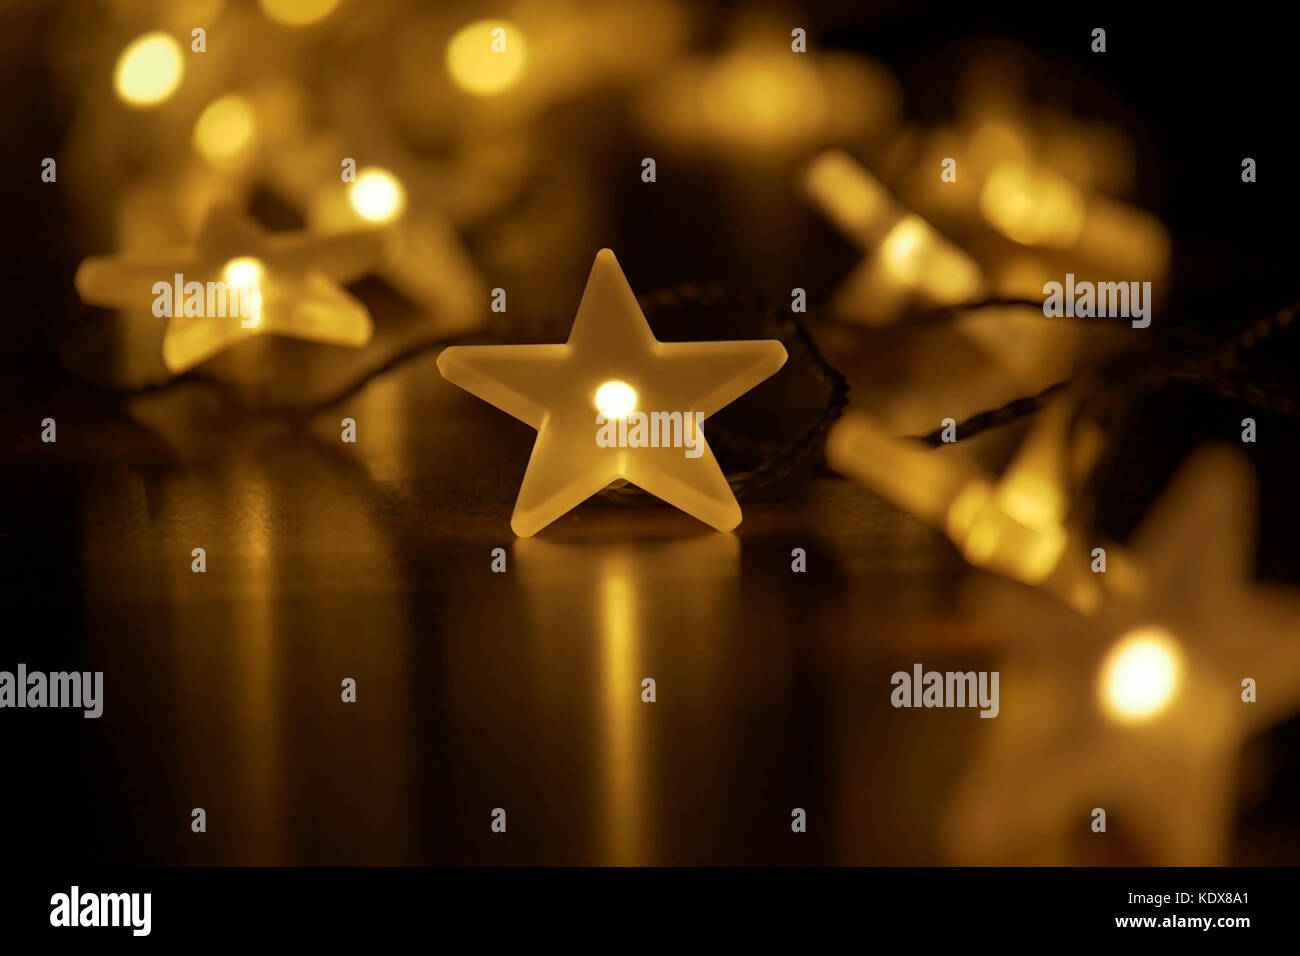 Festive christmas atmosphere with a chain of fairy lights; low depth of field on dark background with copy-space - Stock Image